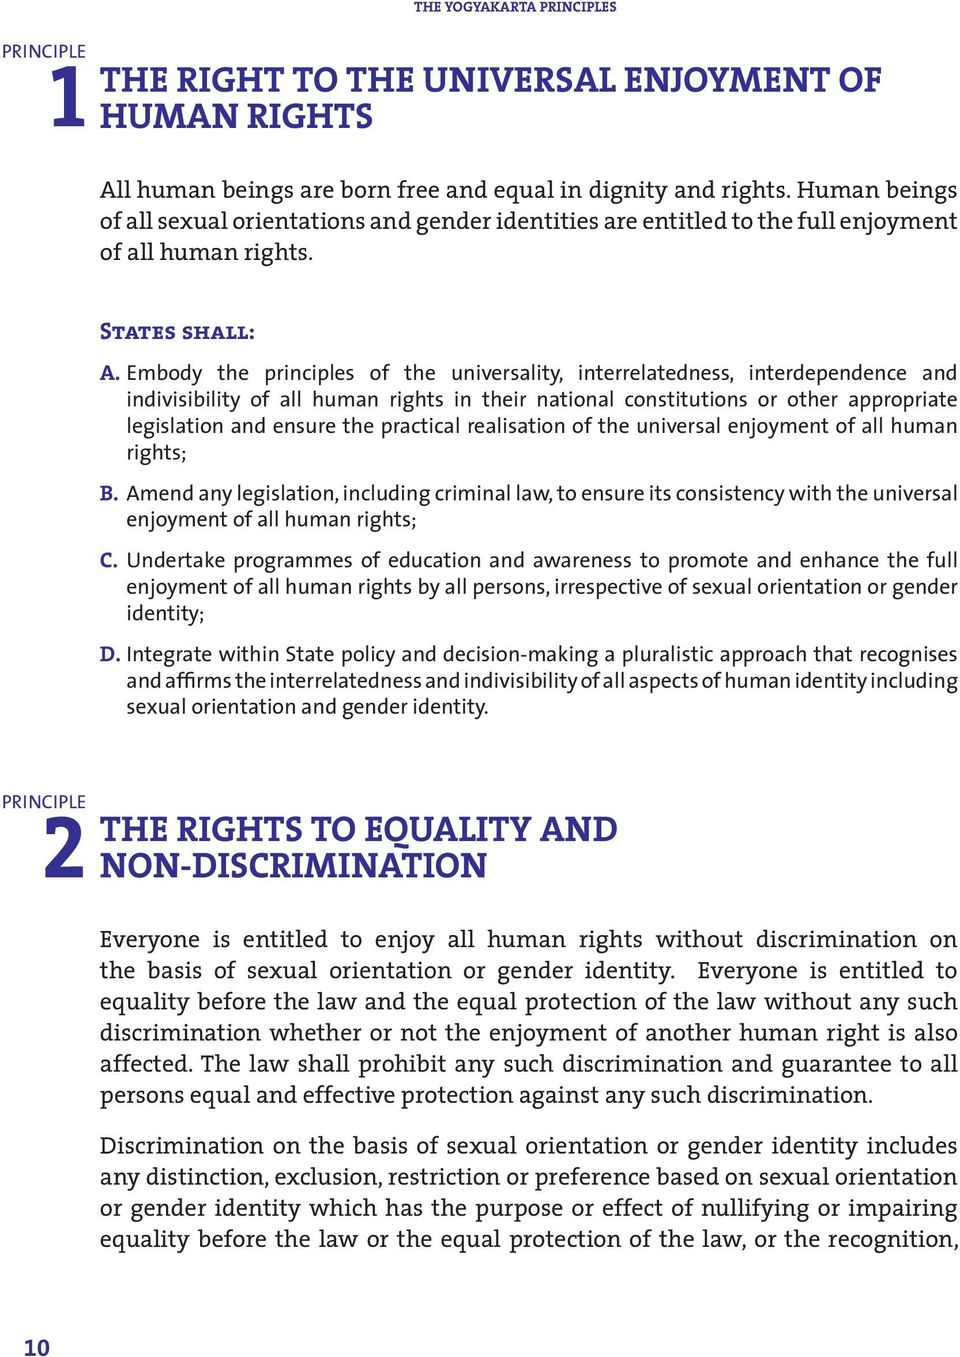 Embody the principles of the universality, interrelatedness, interdependence and indivisibility of all human rights in their national constitutions or other appropriate legislation and ensure the